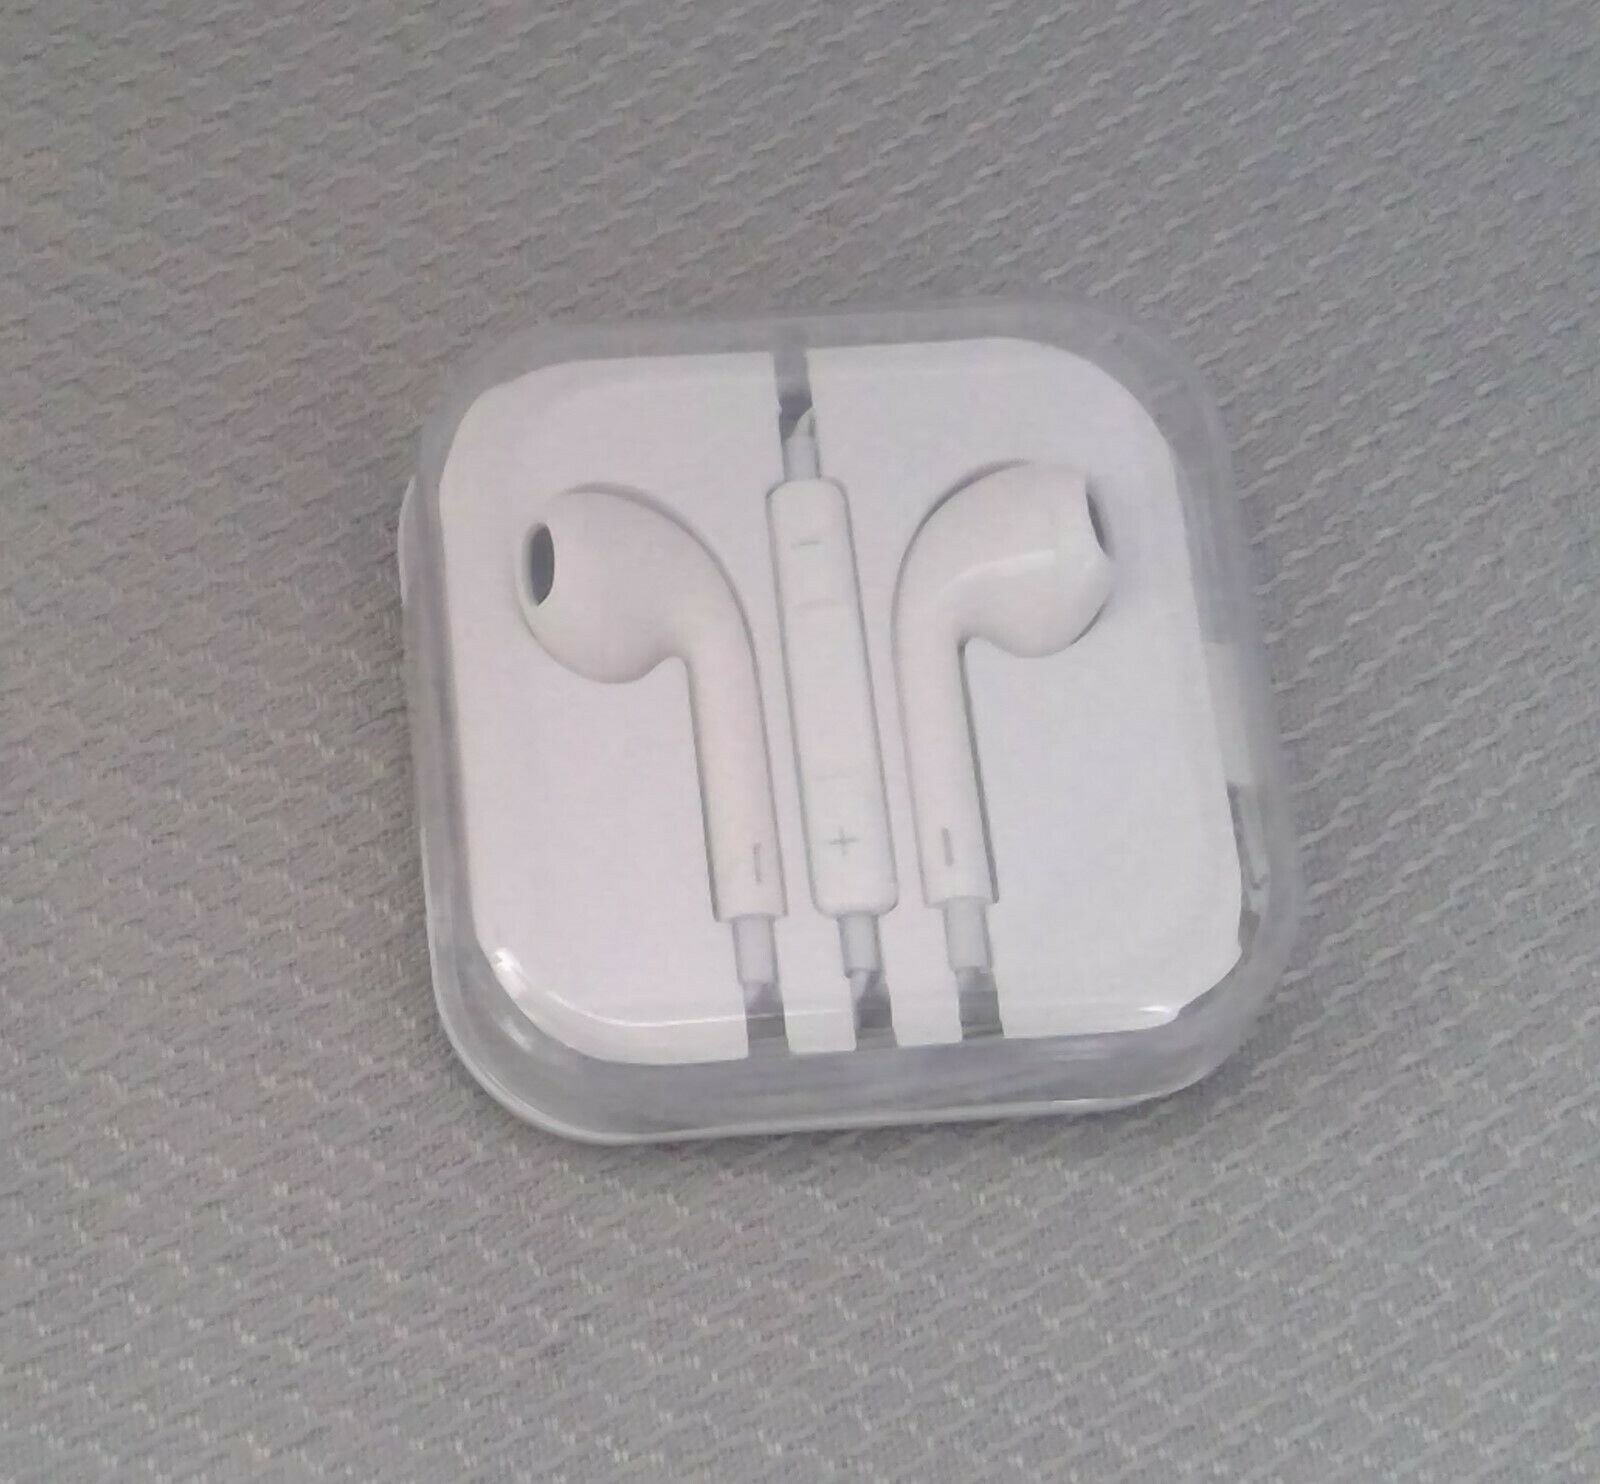 3 5mm earphones for iphone android